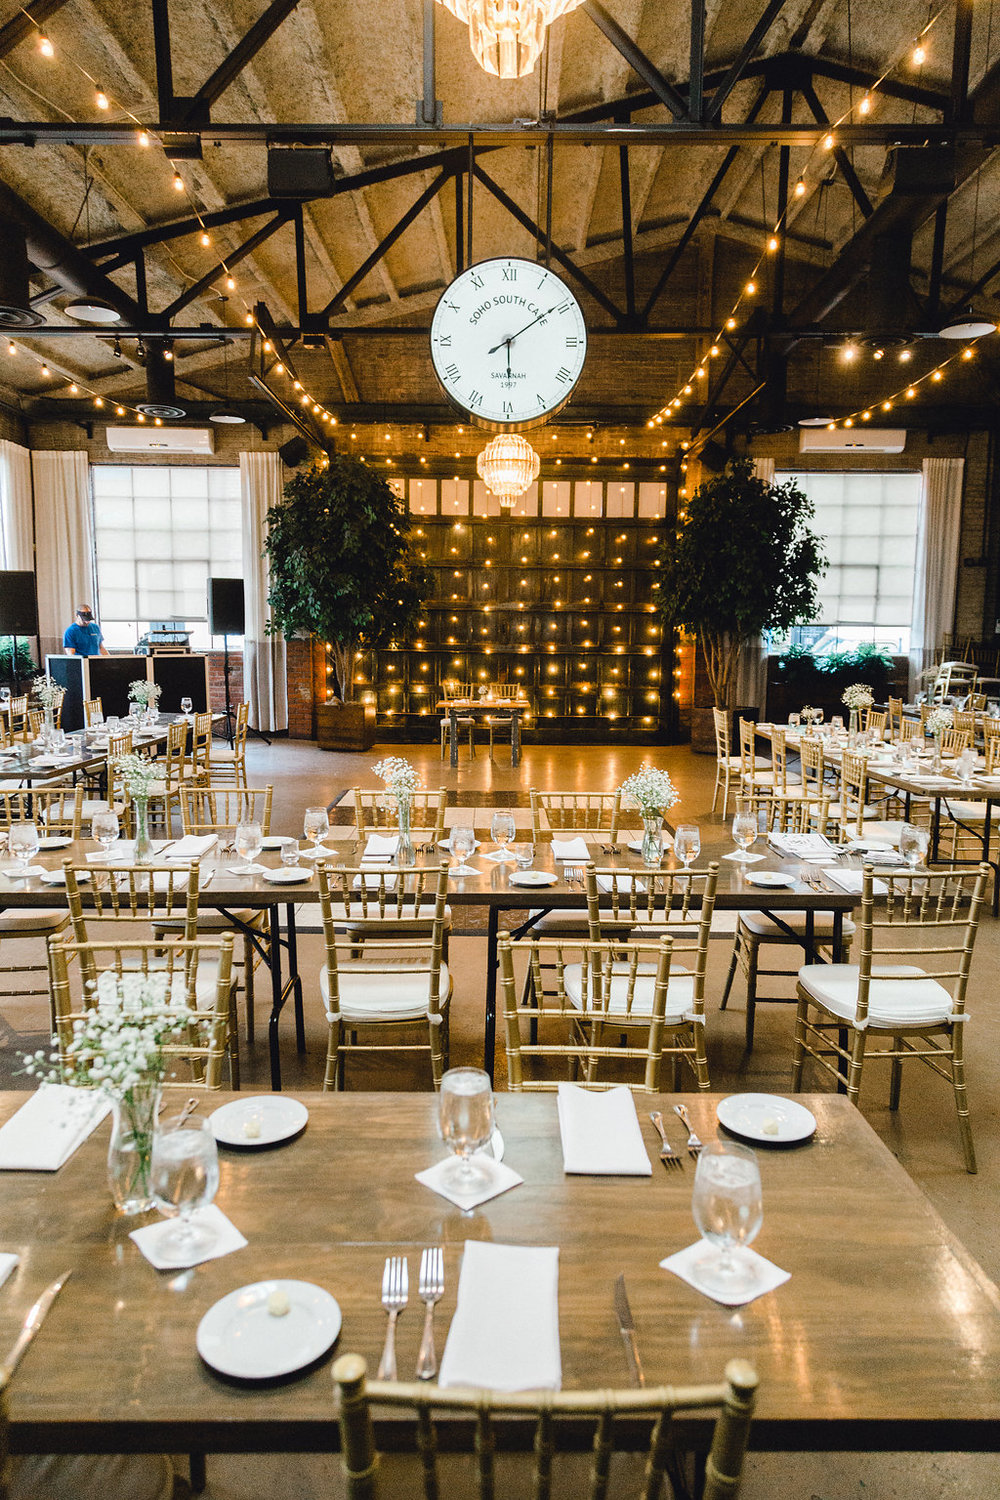 savannah-bridal-shop-i-and-b-florals-sonya-and-josh-colorful-rustic-boho-wedding-florals-at-soho-south-cafe-savannah-ga-wedding-danielle-george-photography-24.JPG